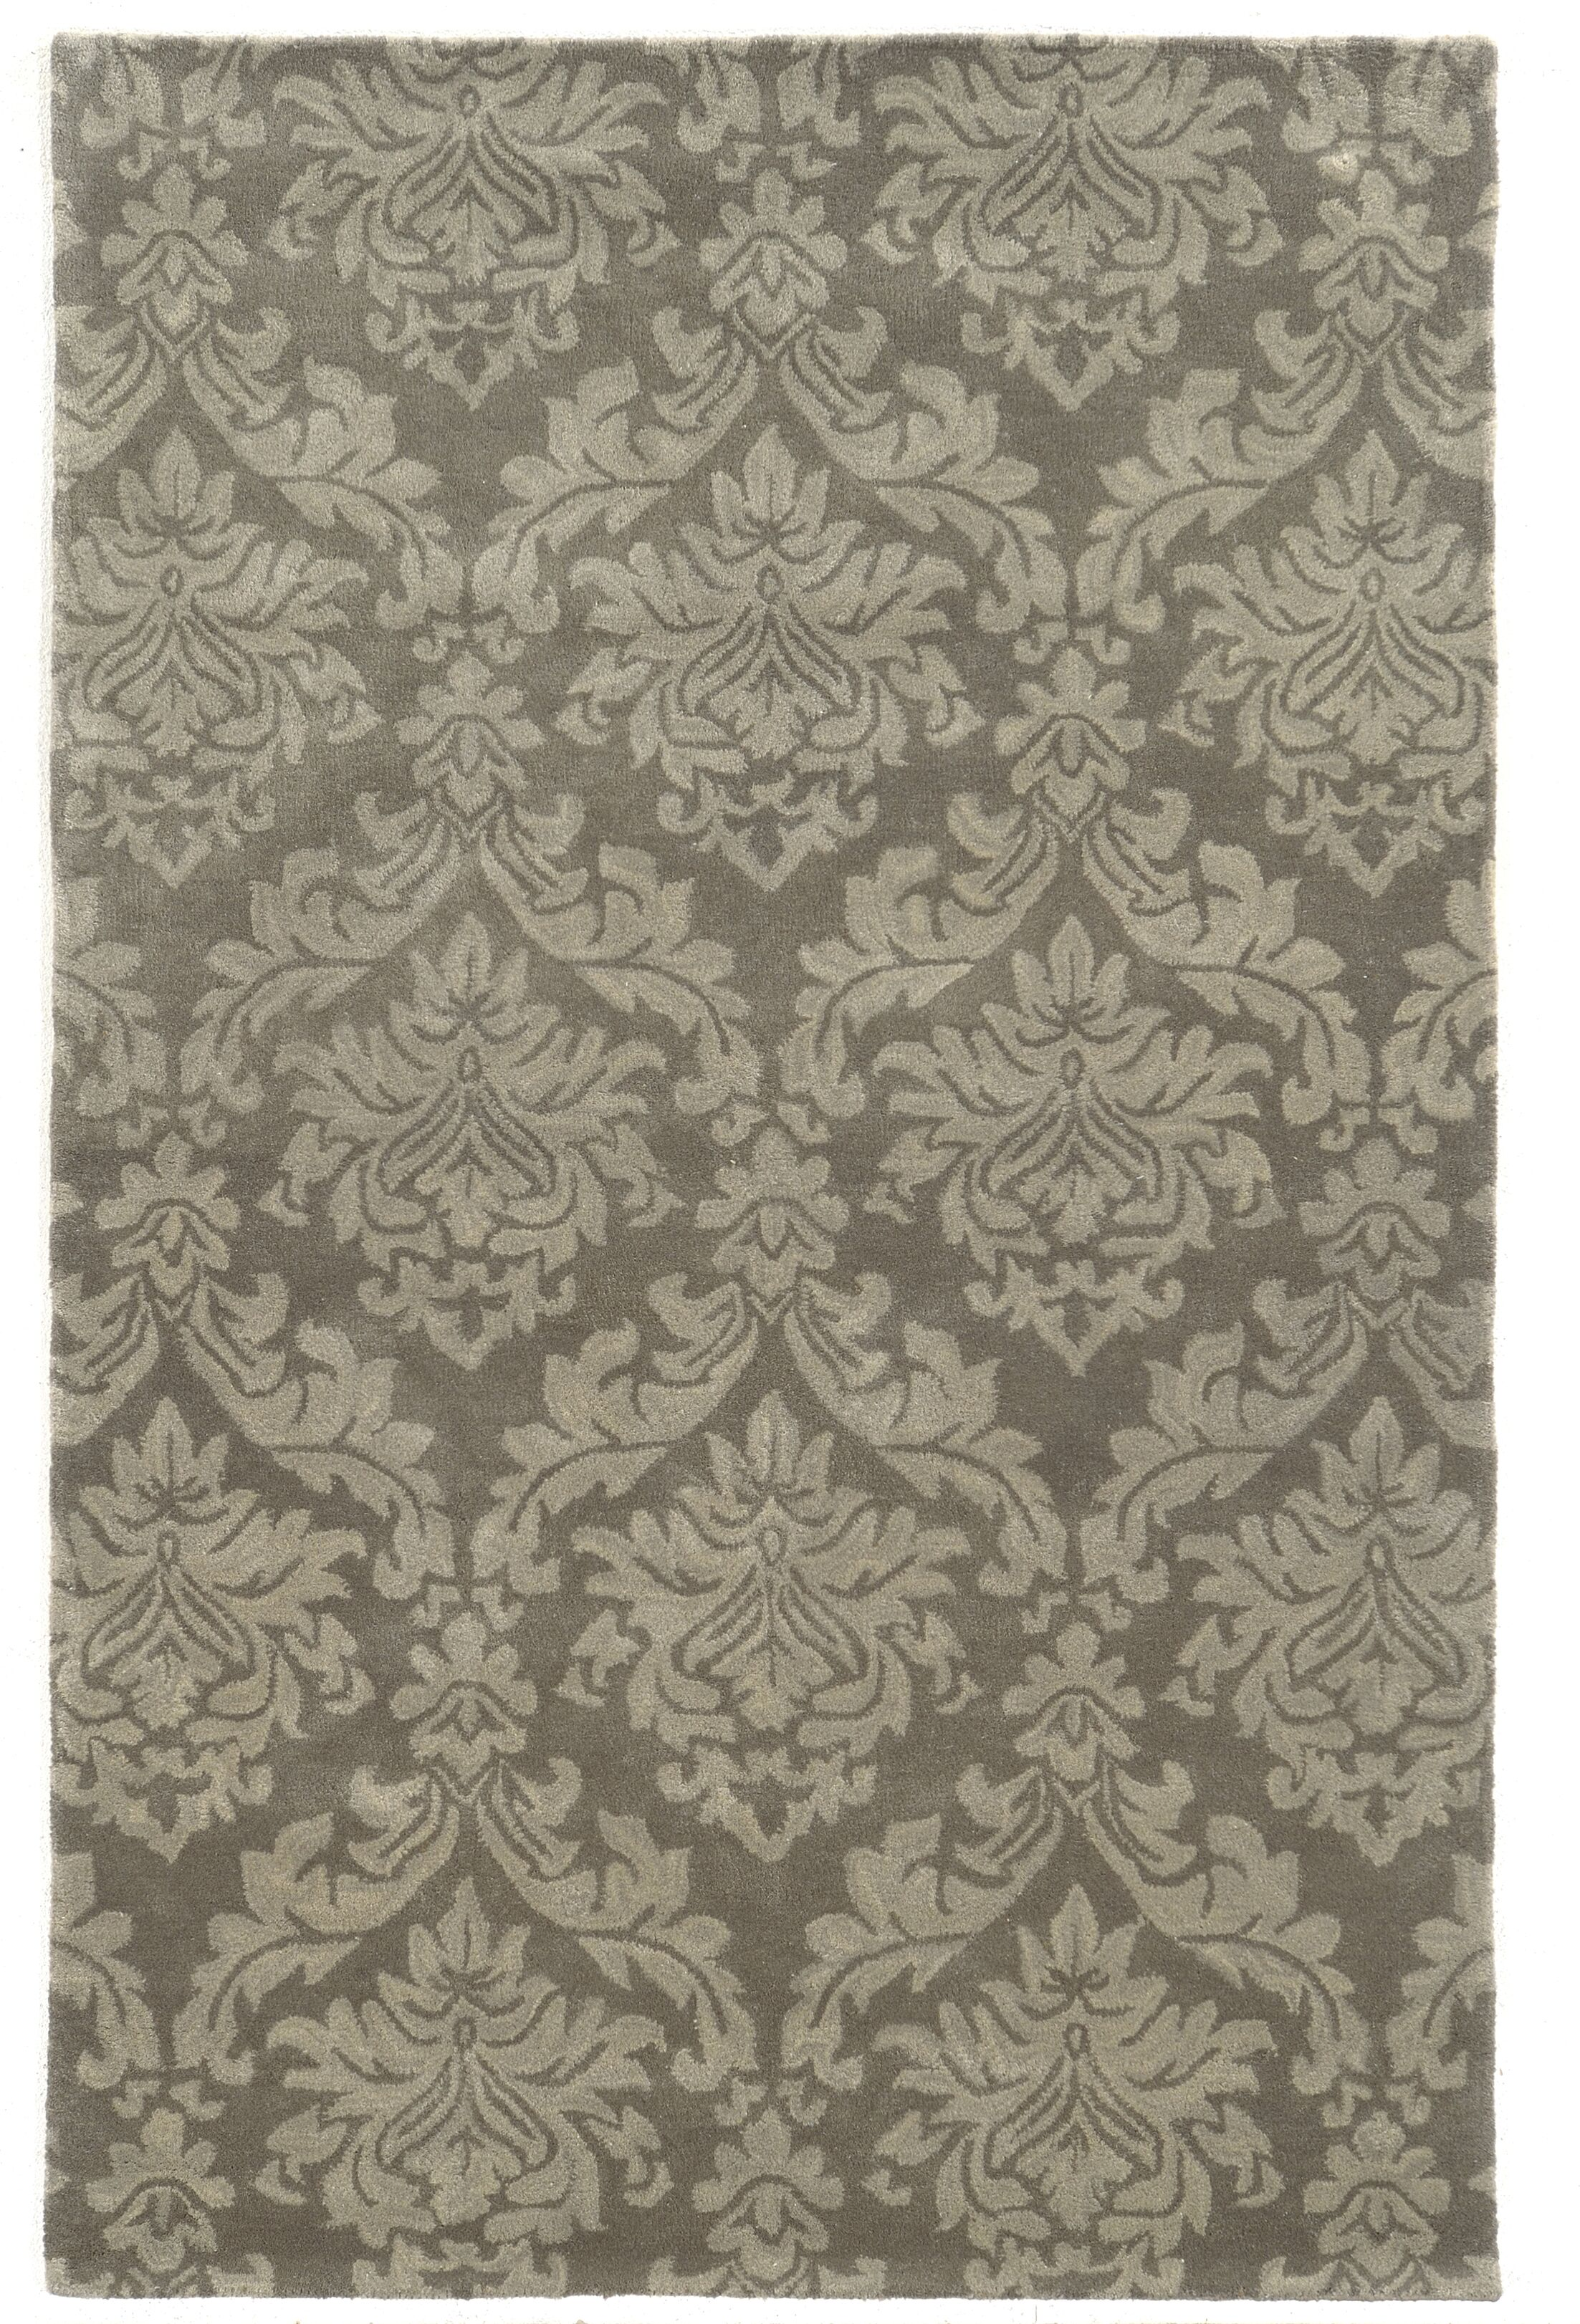 Malo Hand-Tufted Grey Area Rug Rug Size: Rectangle 5' x 8'